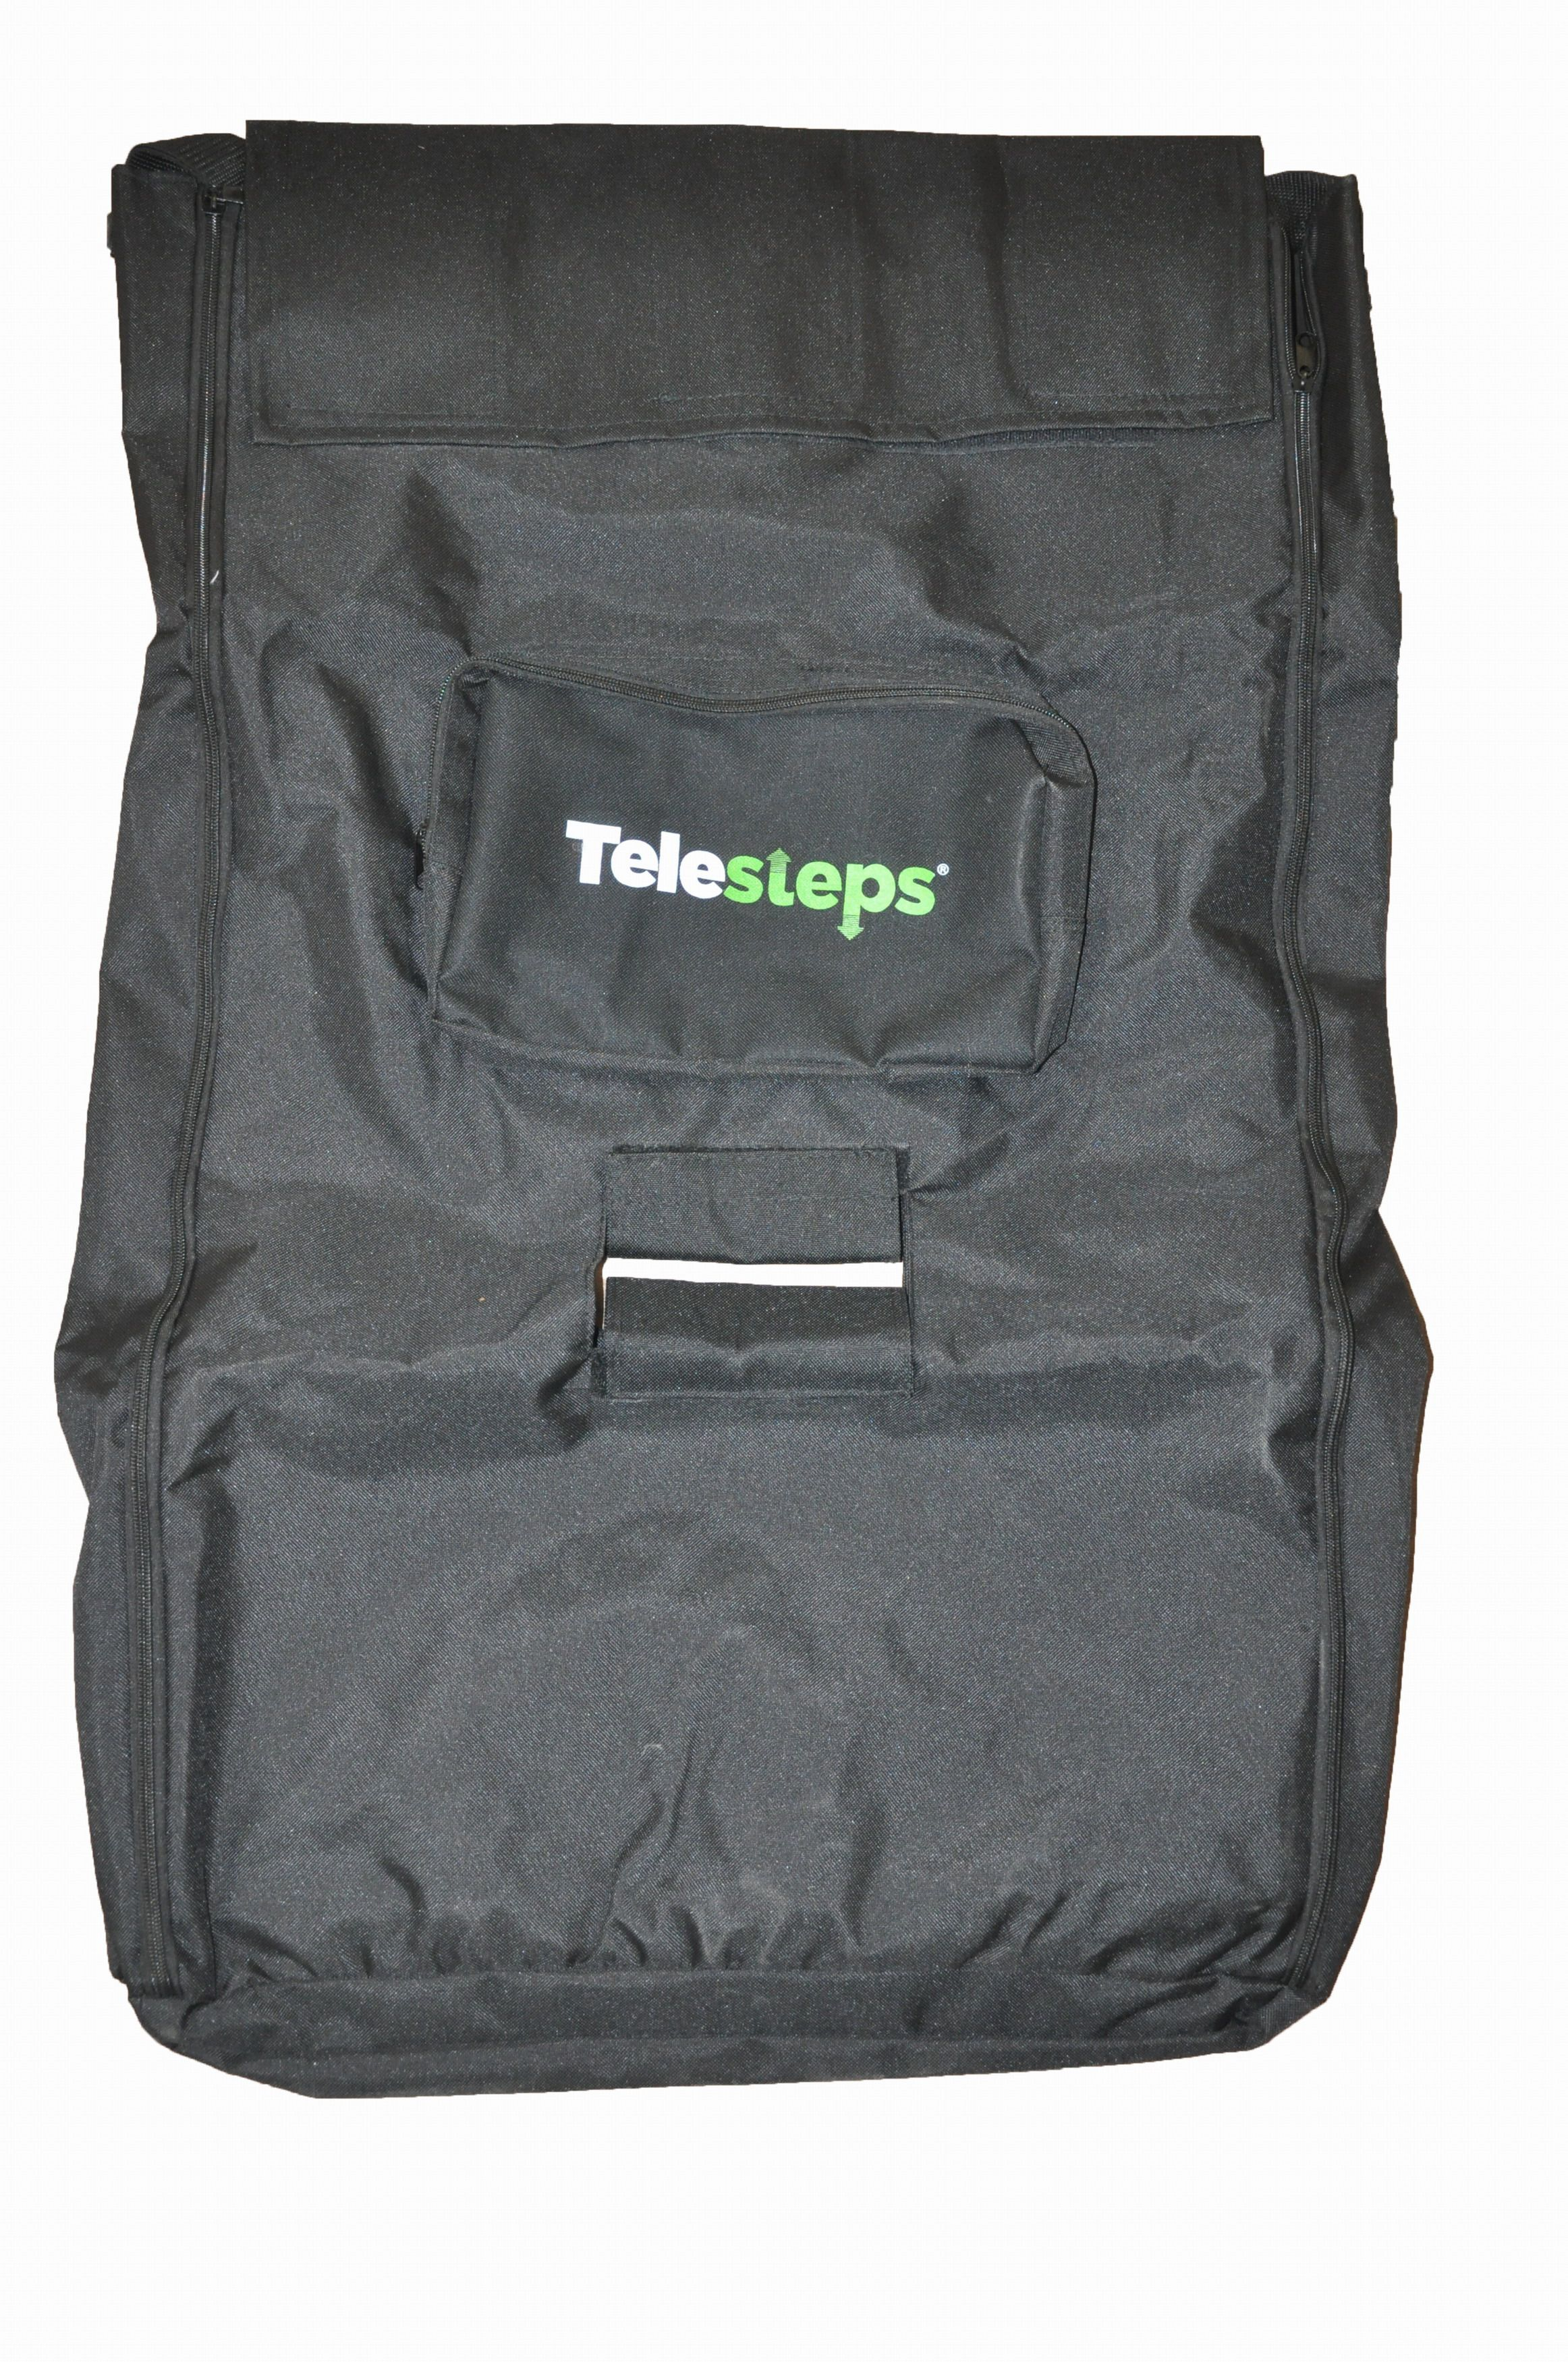 BAG-TS Telesteps Cargo Carrier Compatible With Telestep Extension